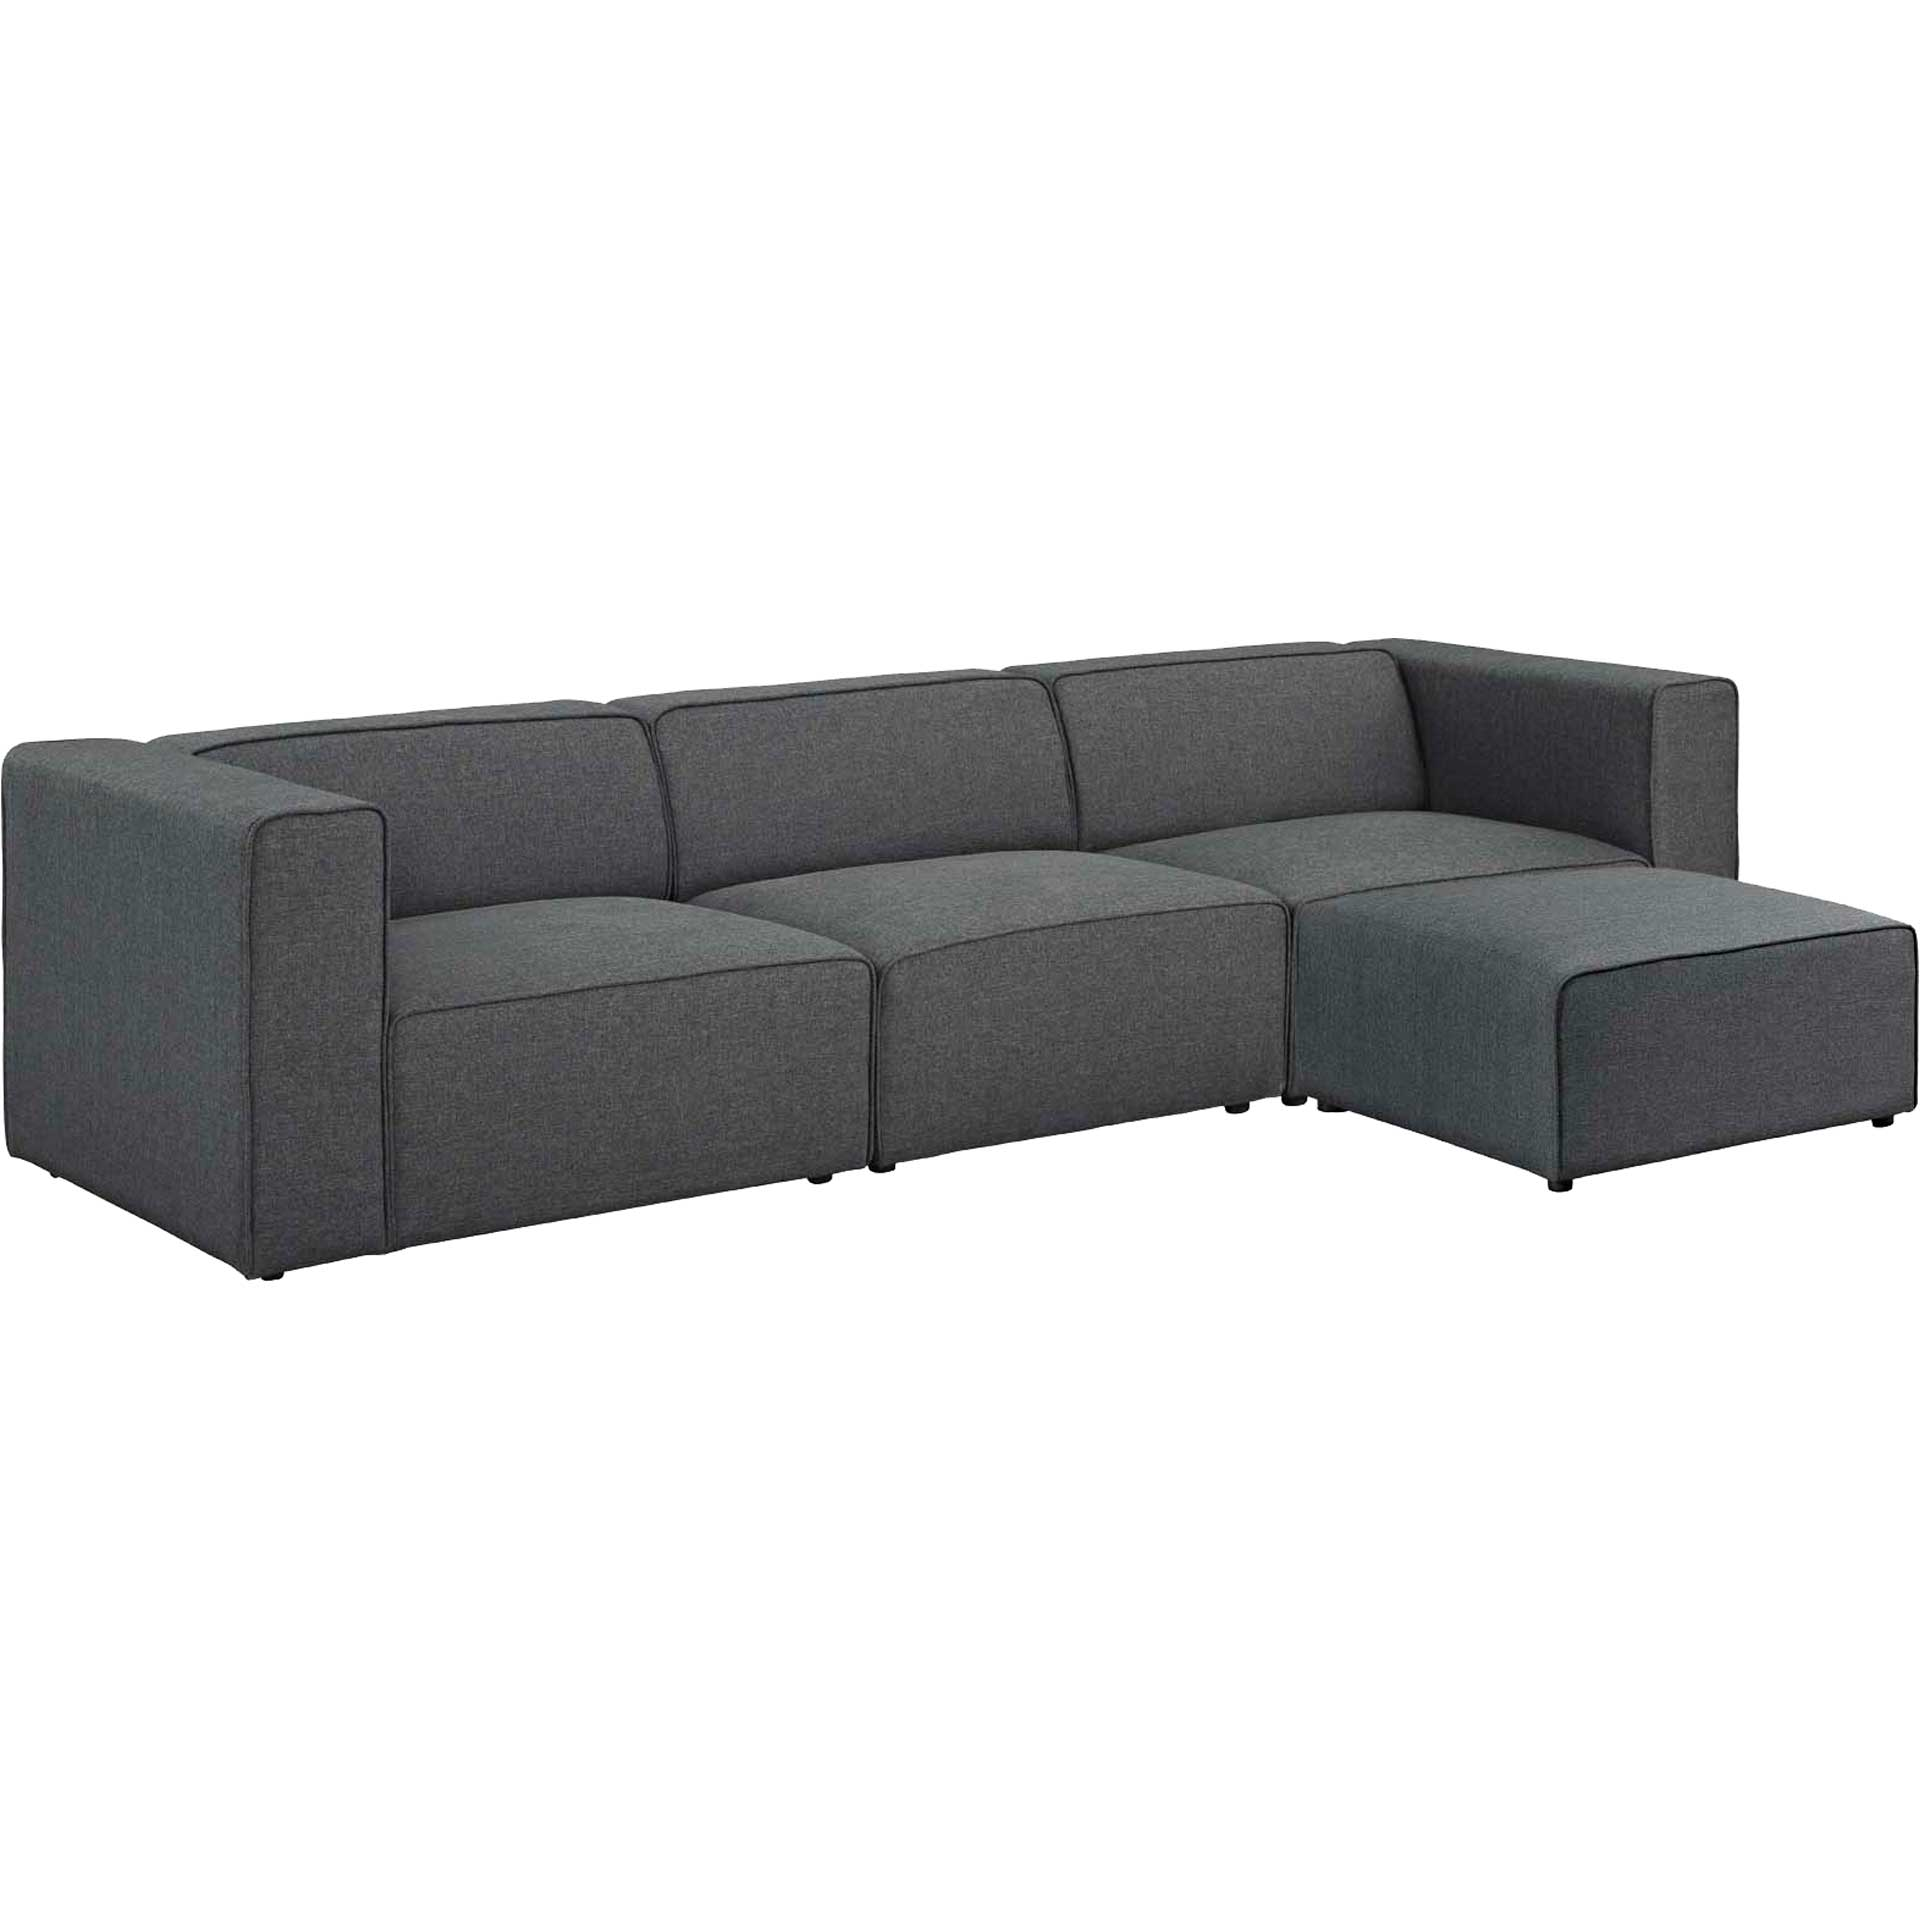 Maisie 4 Piece Sectional Sofa Gray